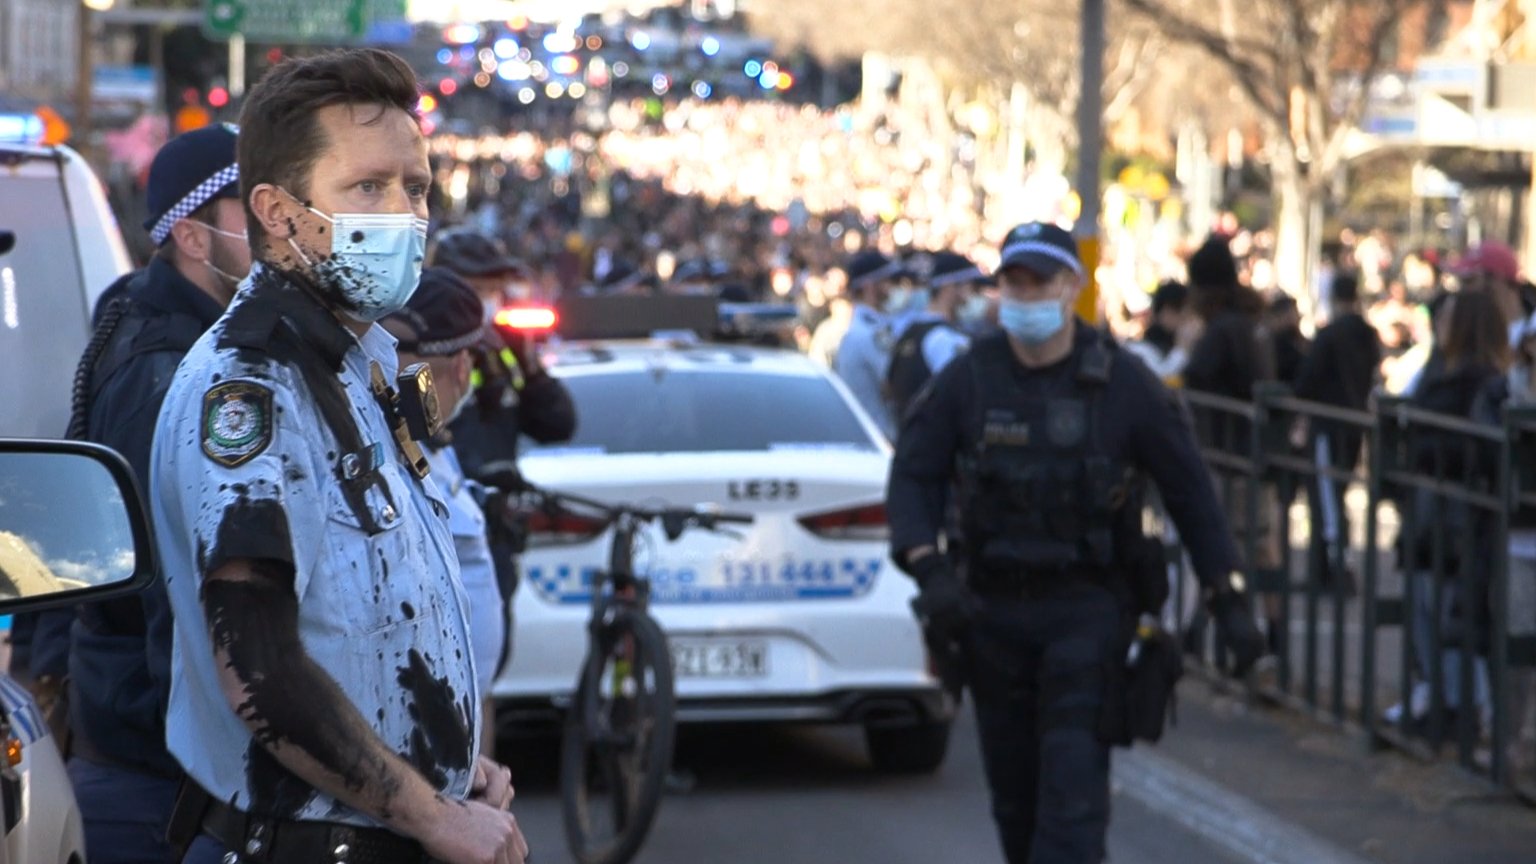 NSW police clash with protesters